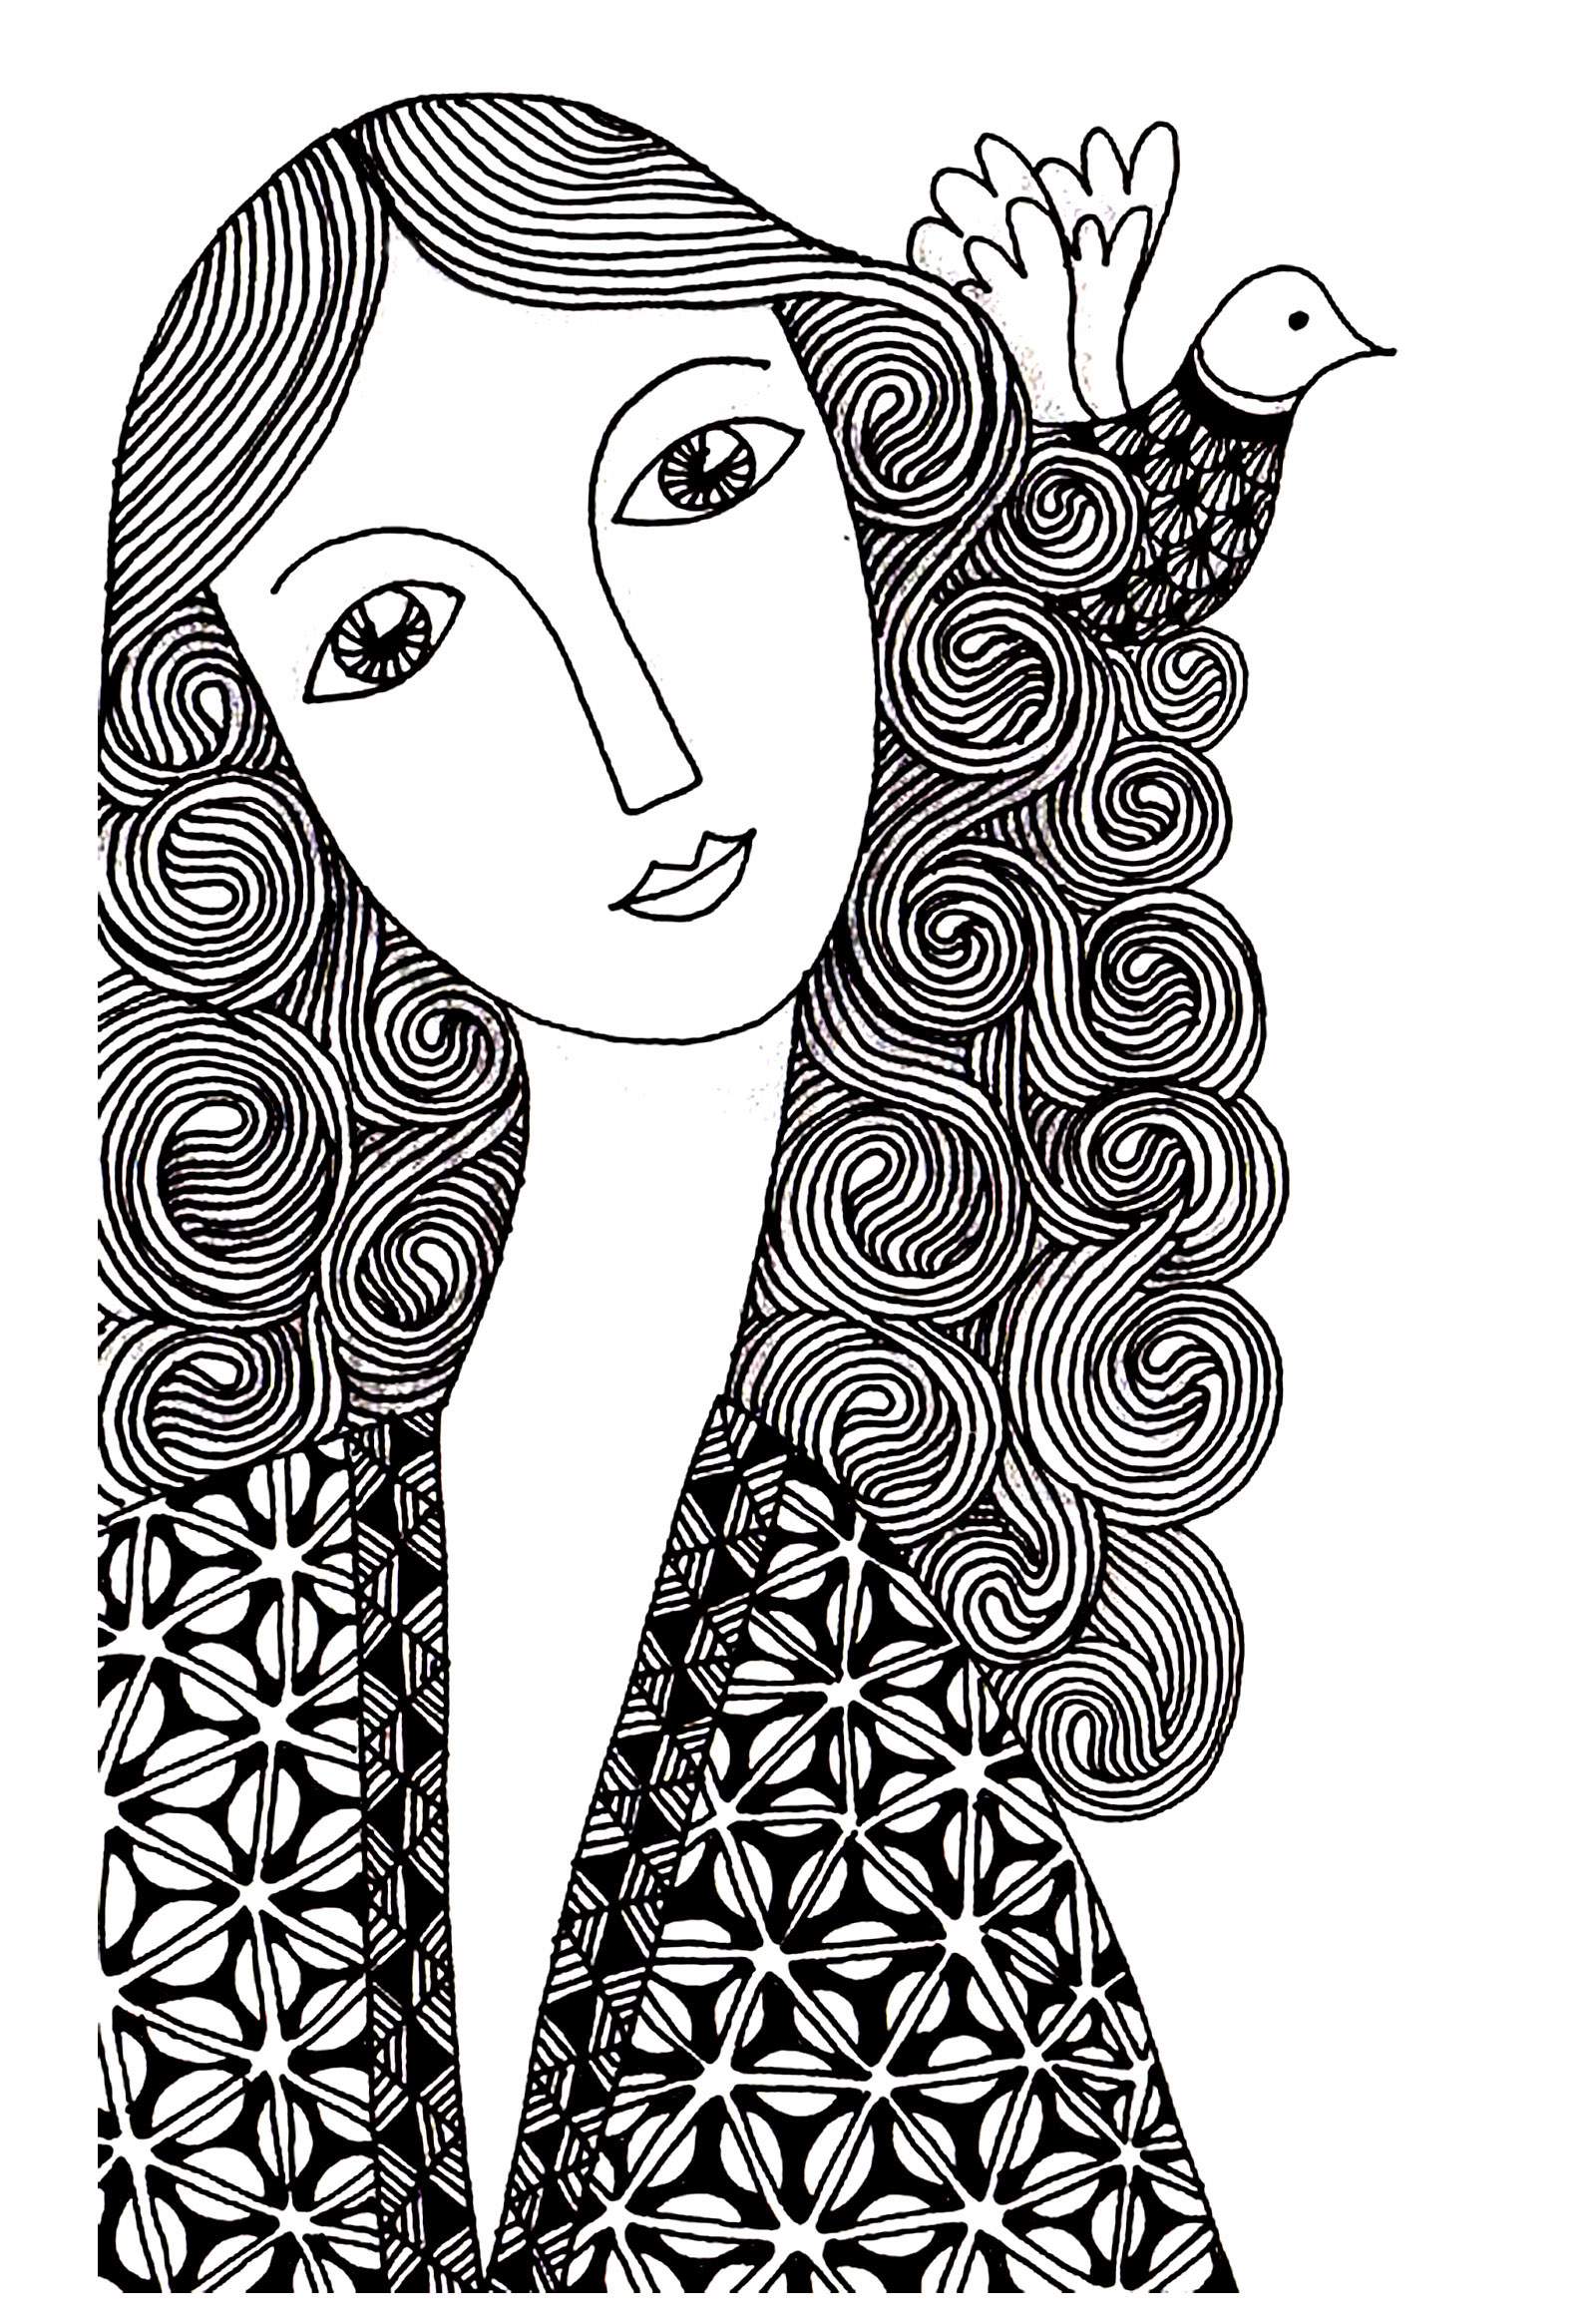 Coloring pages woman - Coloring Woman Simple Free To Print